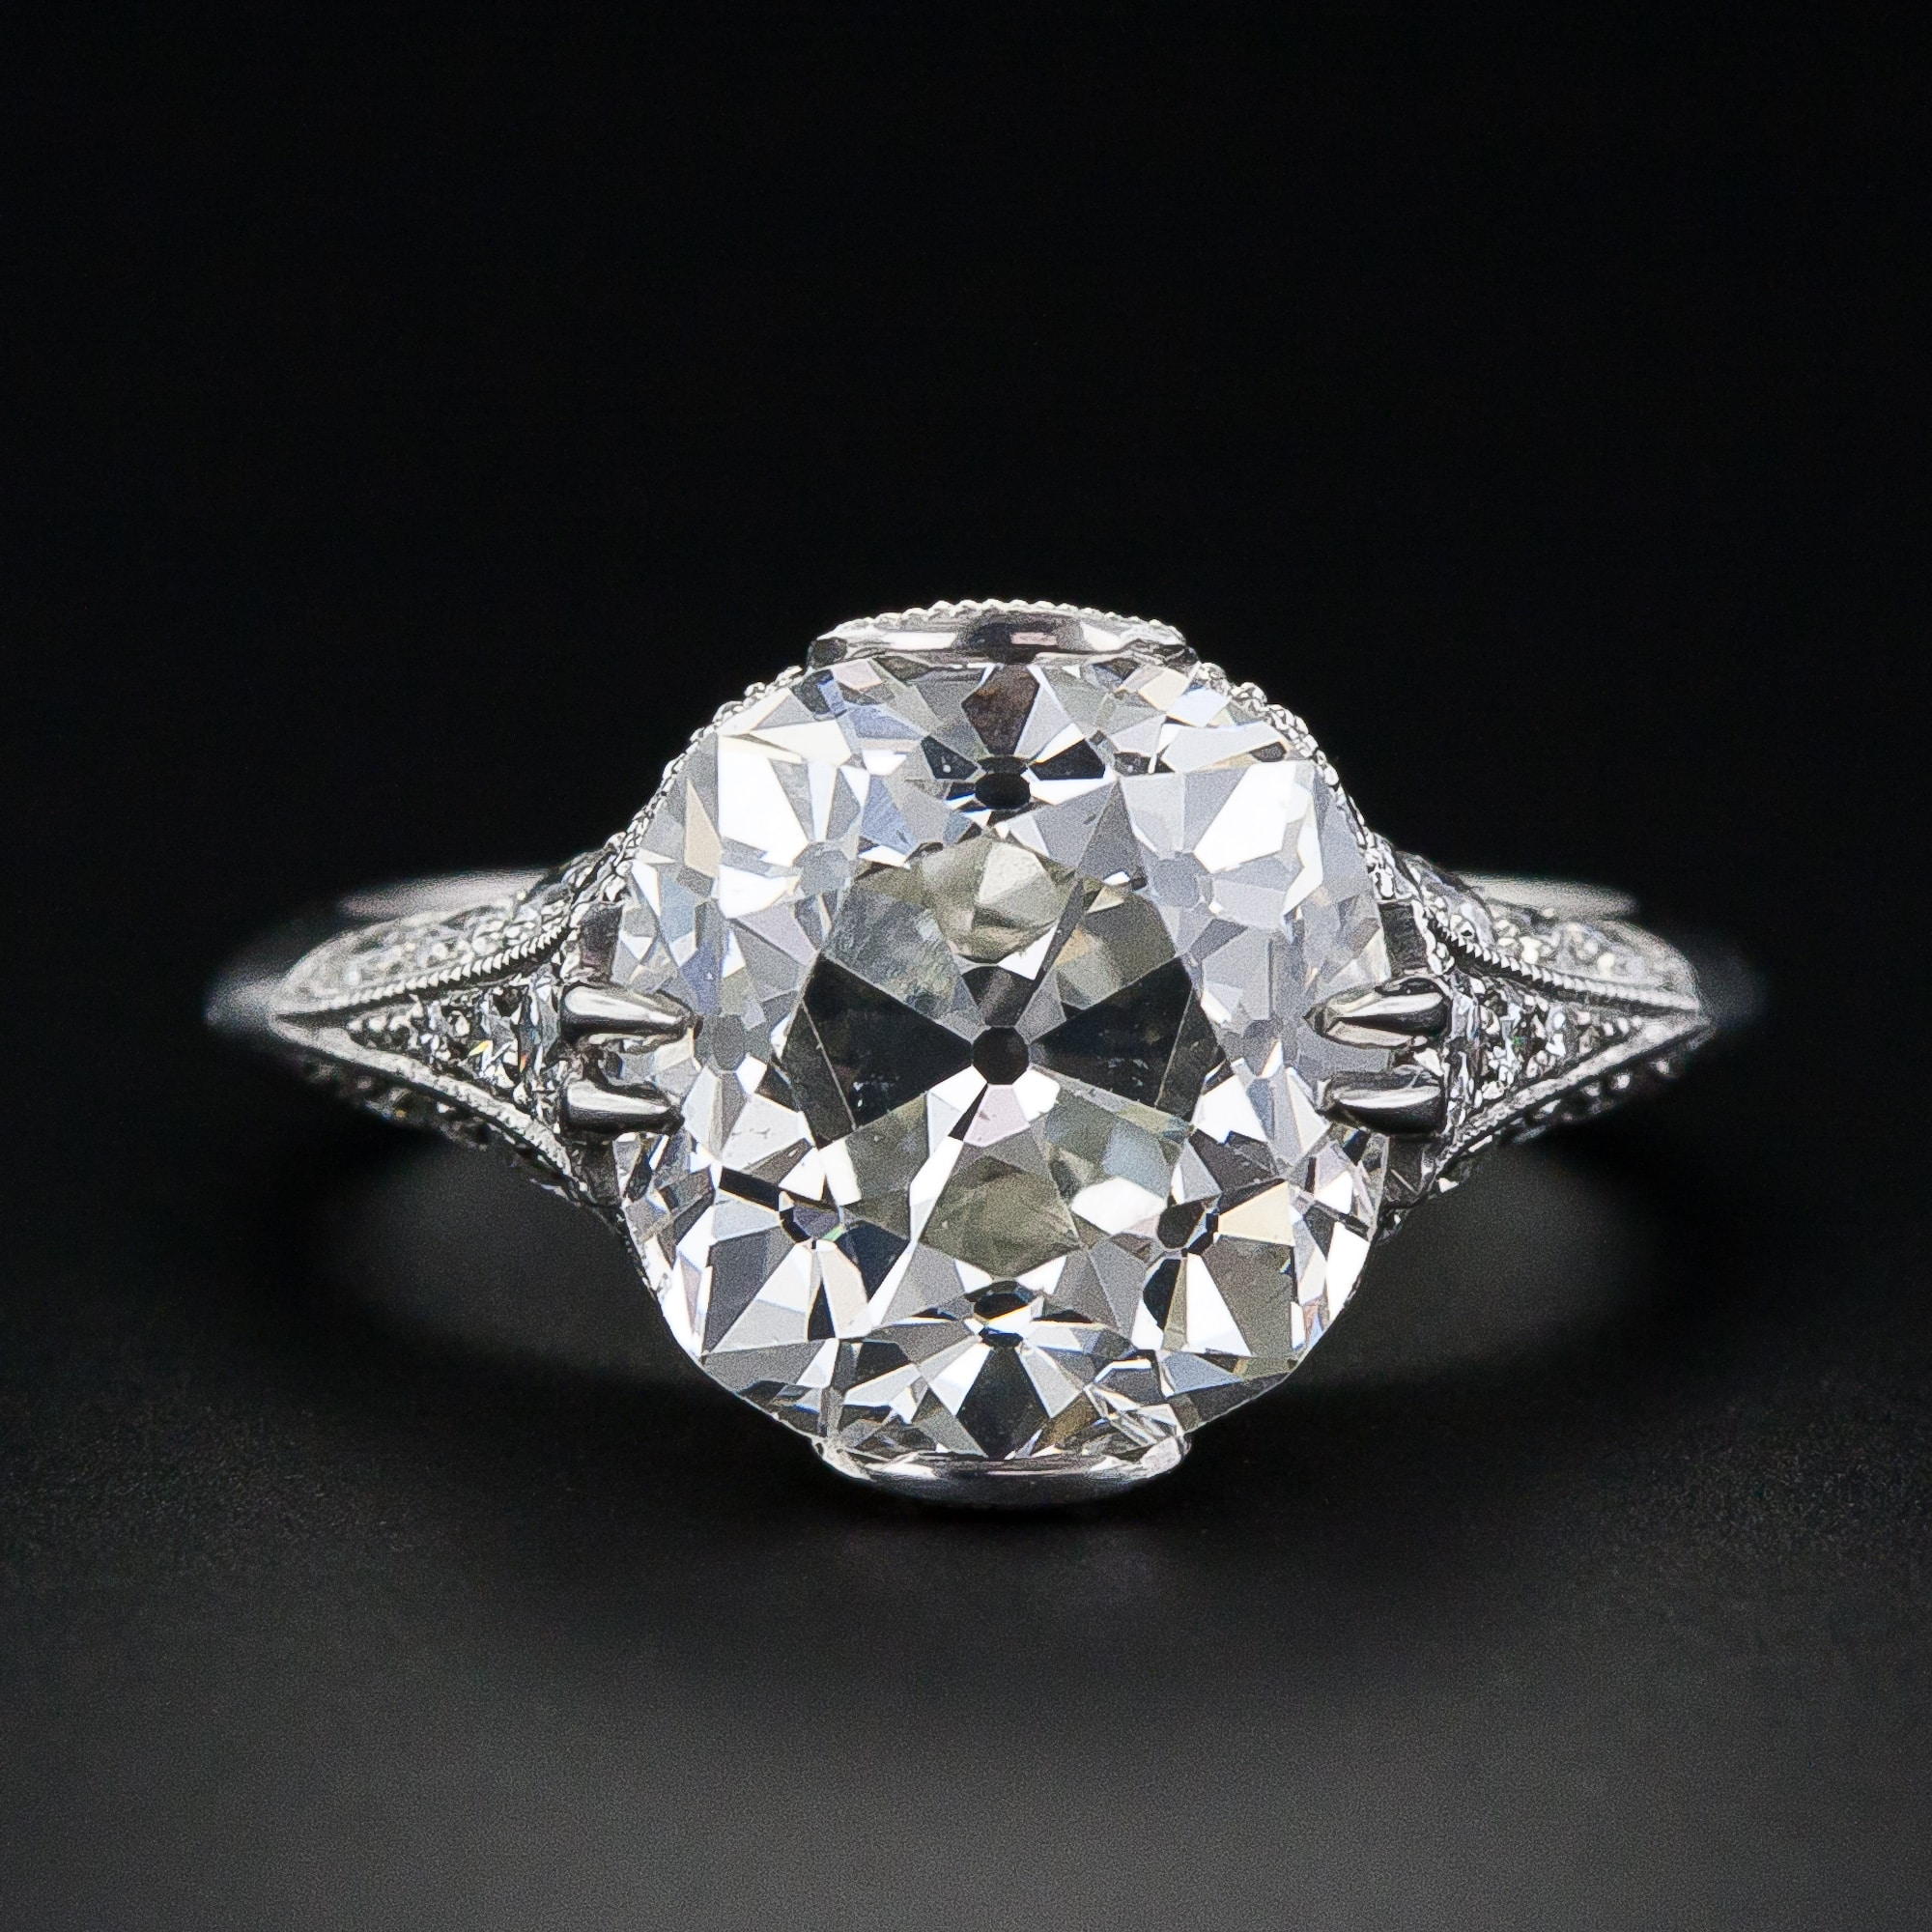 Antique Cushion Cut Diamond Ring 1.jpg